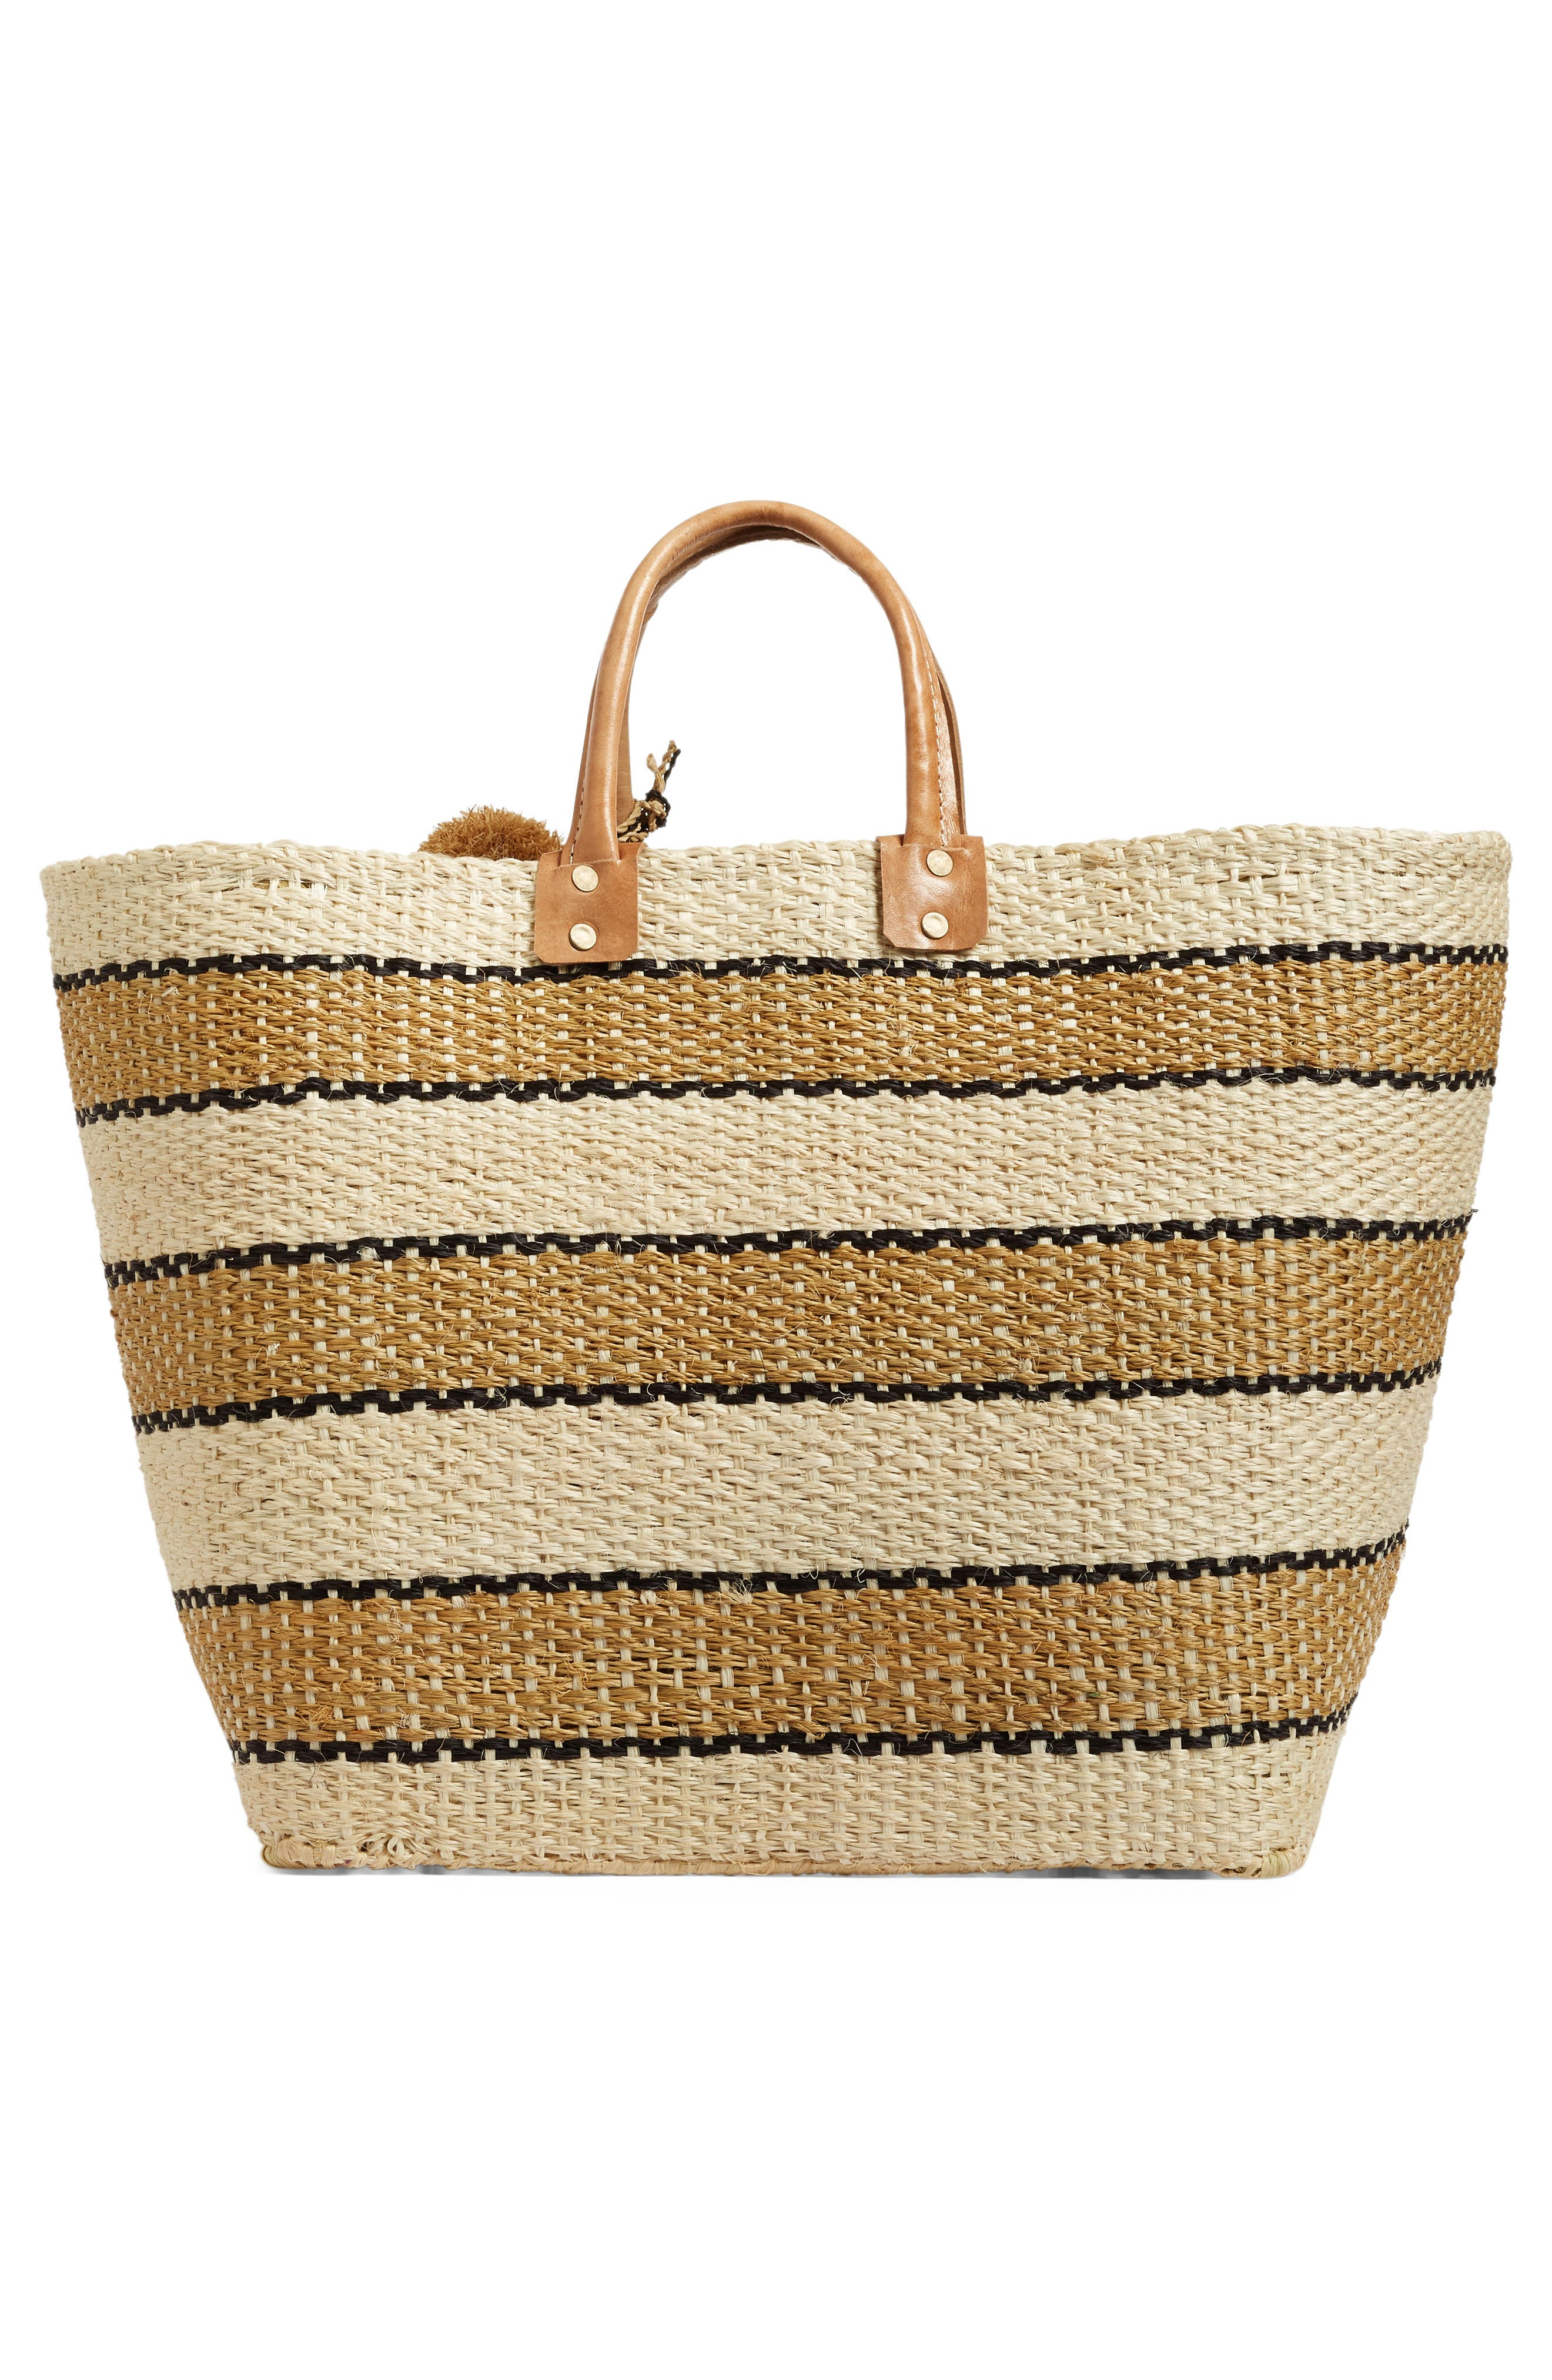 Alternate Image 3  - Mar y Sol 'Capri' Woven Tote with Pom Charms